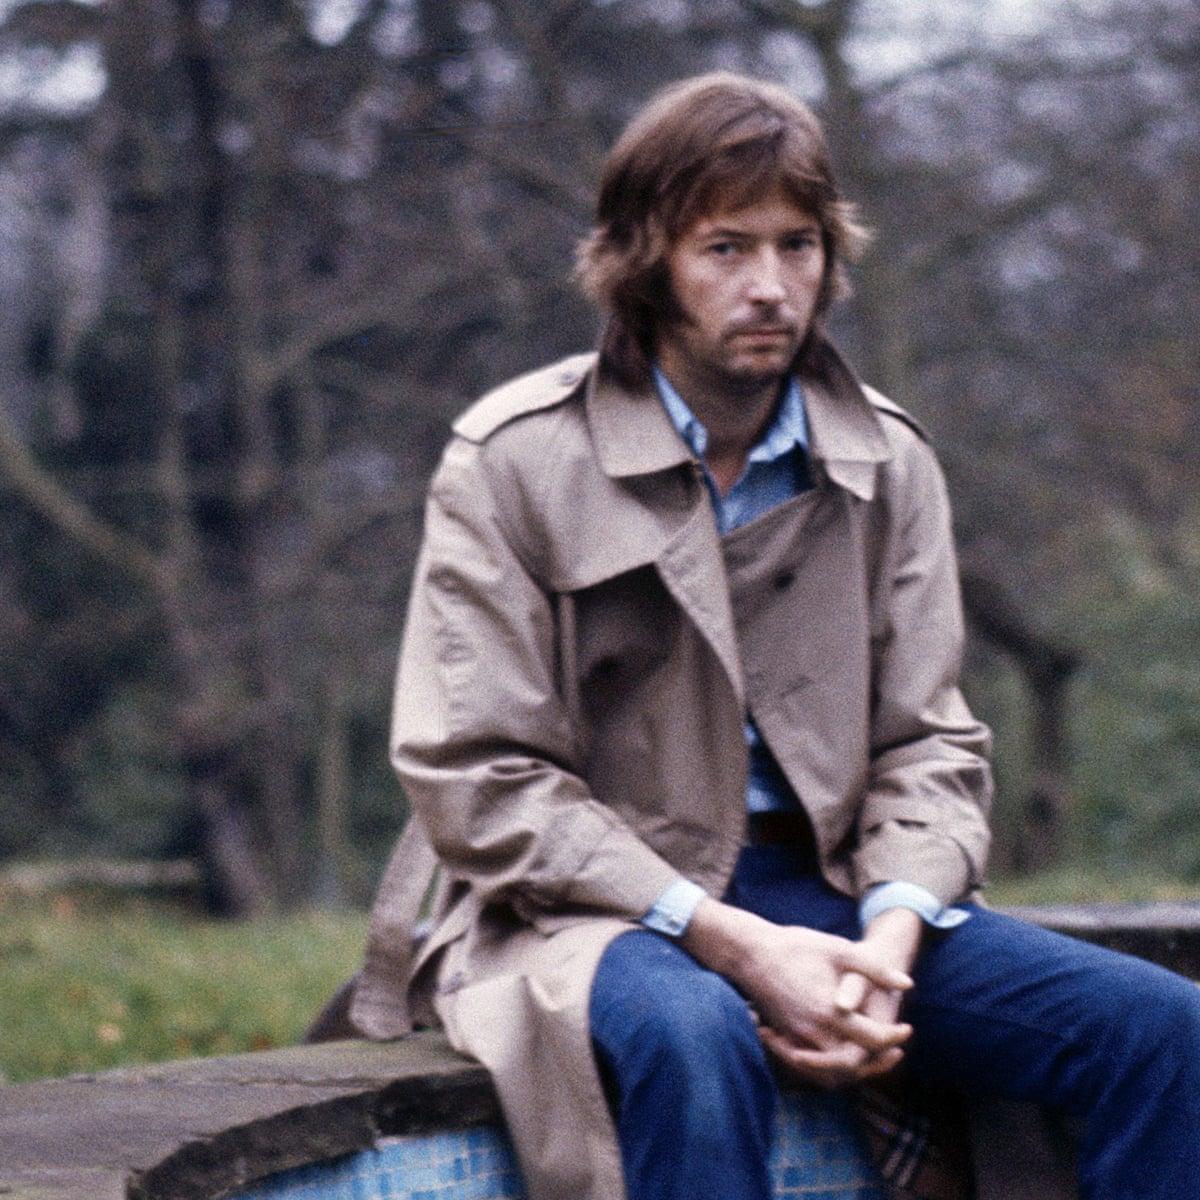 Slowhand The Life And Music Of Eric Clapton Review The Sinner Not The Songs Books The Guardian